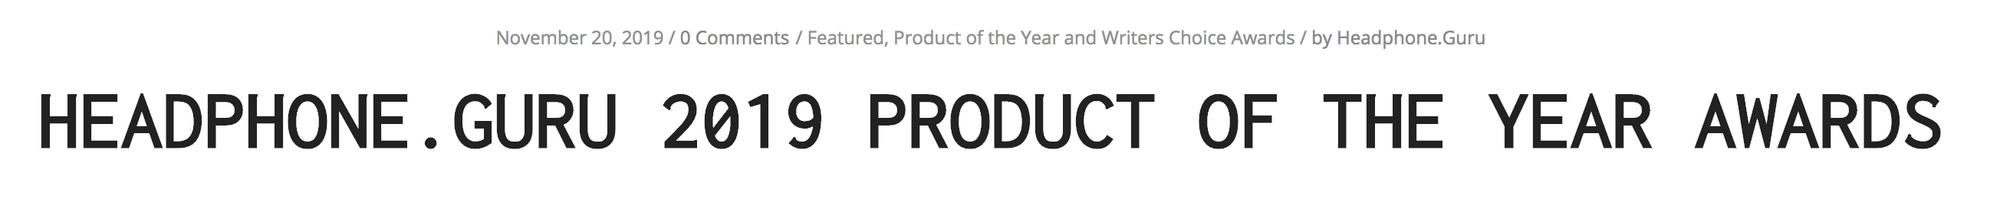 Headphone Guru gives the LCD-1 and LCD-GX their Product of the Year Awards!